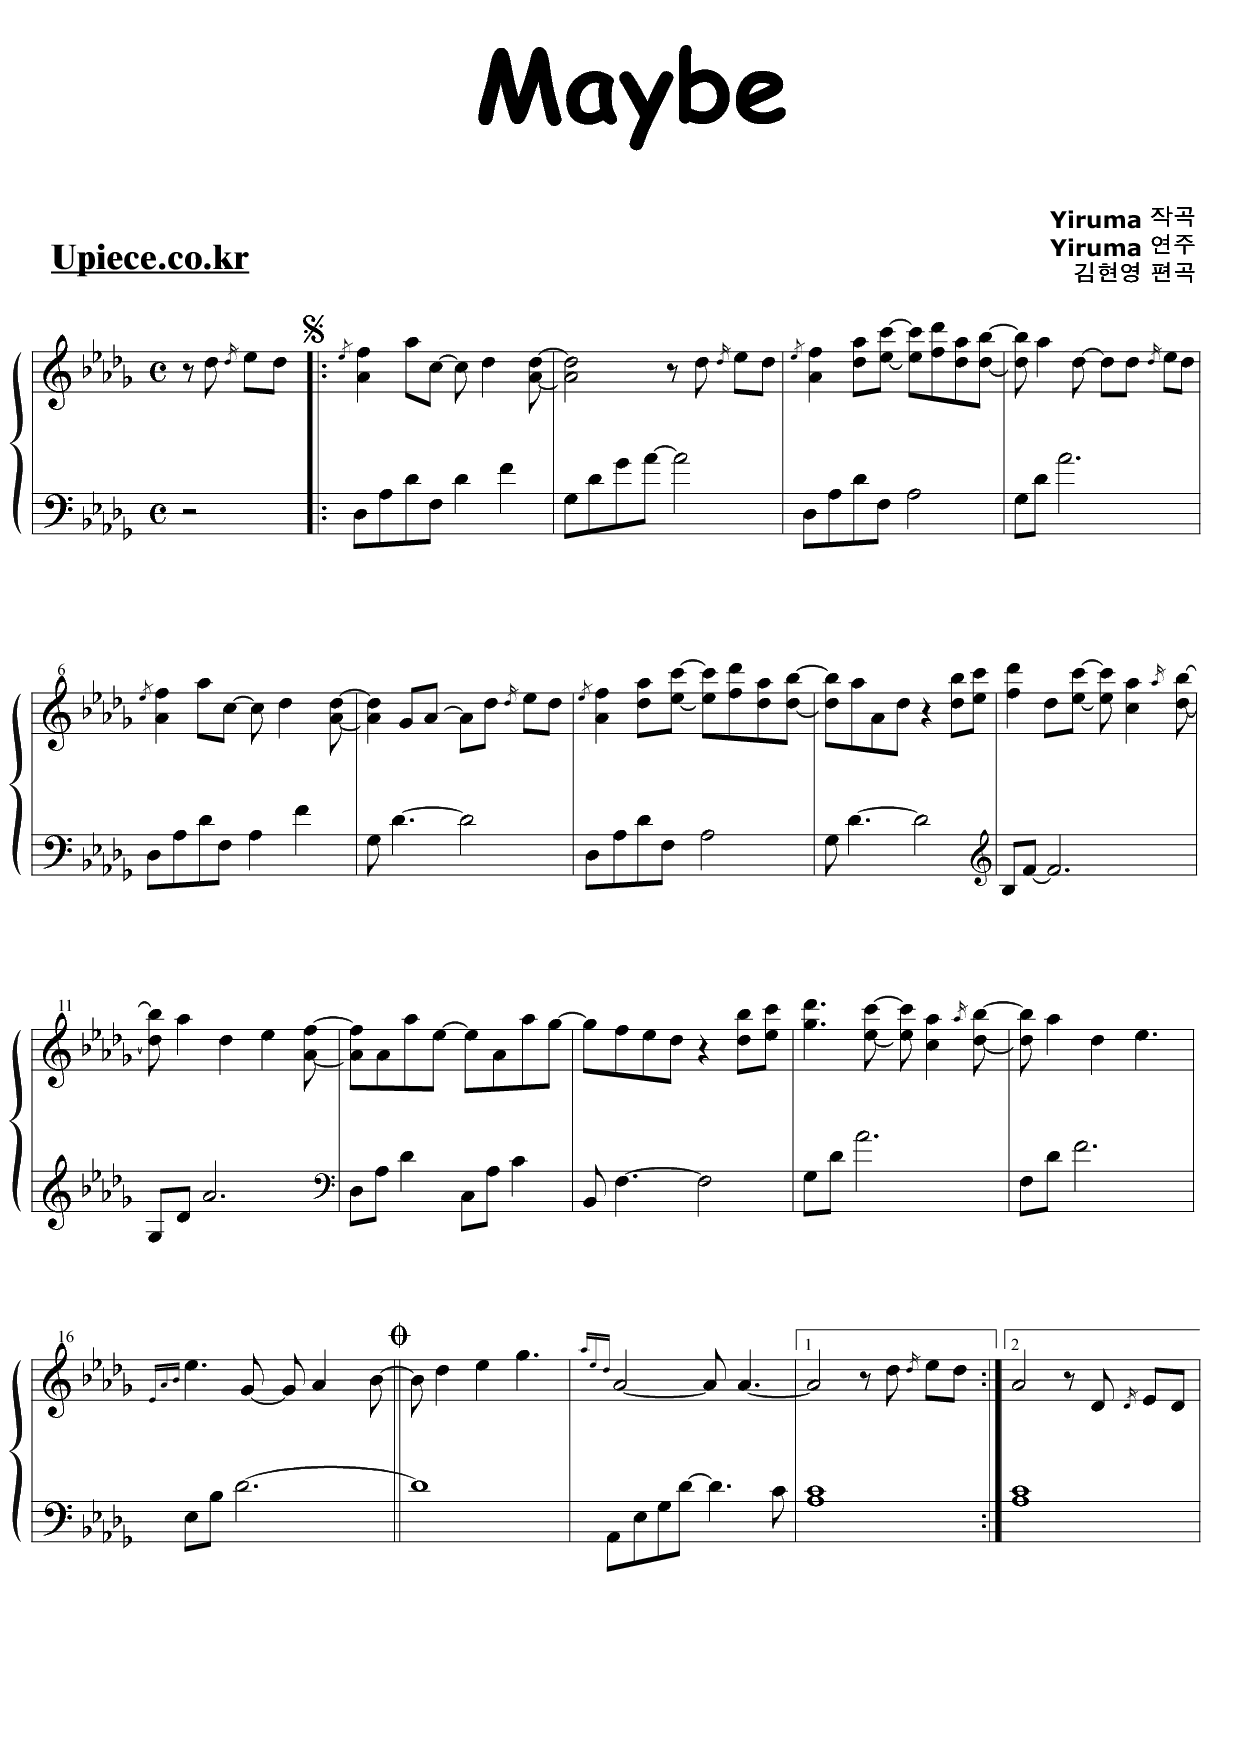 Maybe yiruma score sheet piano sheets pinterest scores piano sheet music hexwebz Choice Image